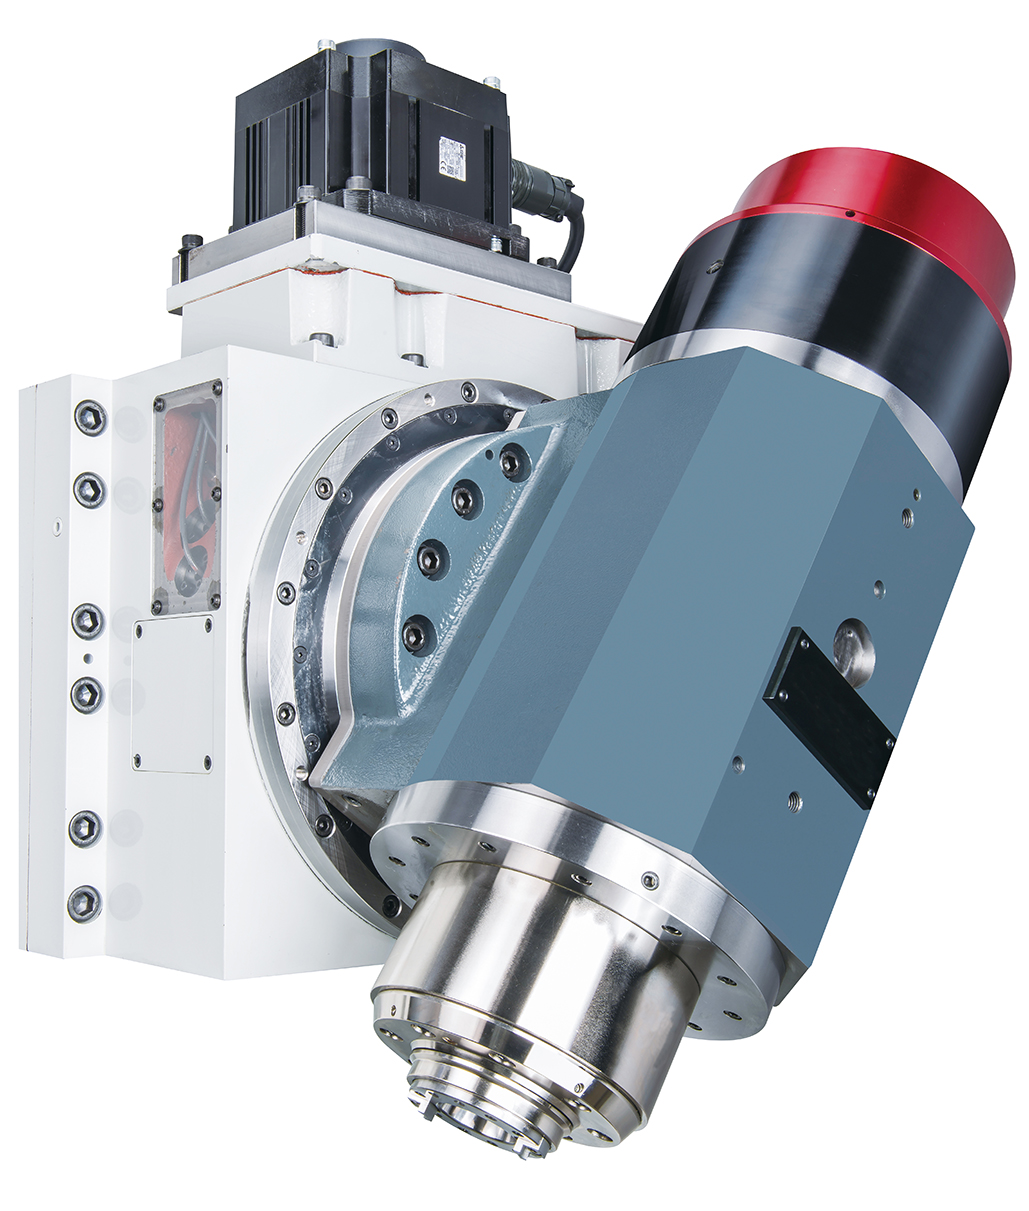 CNC SWIVELING SPINDLE HEAD